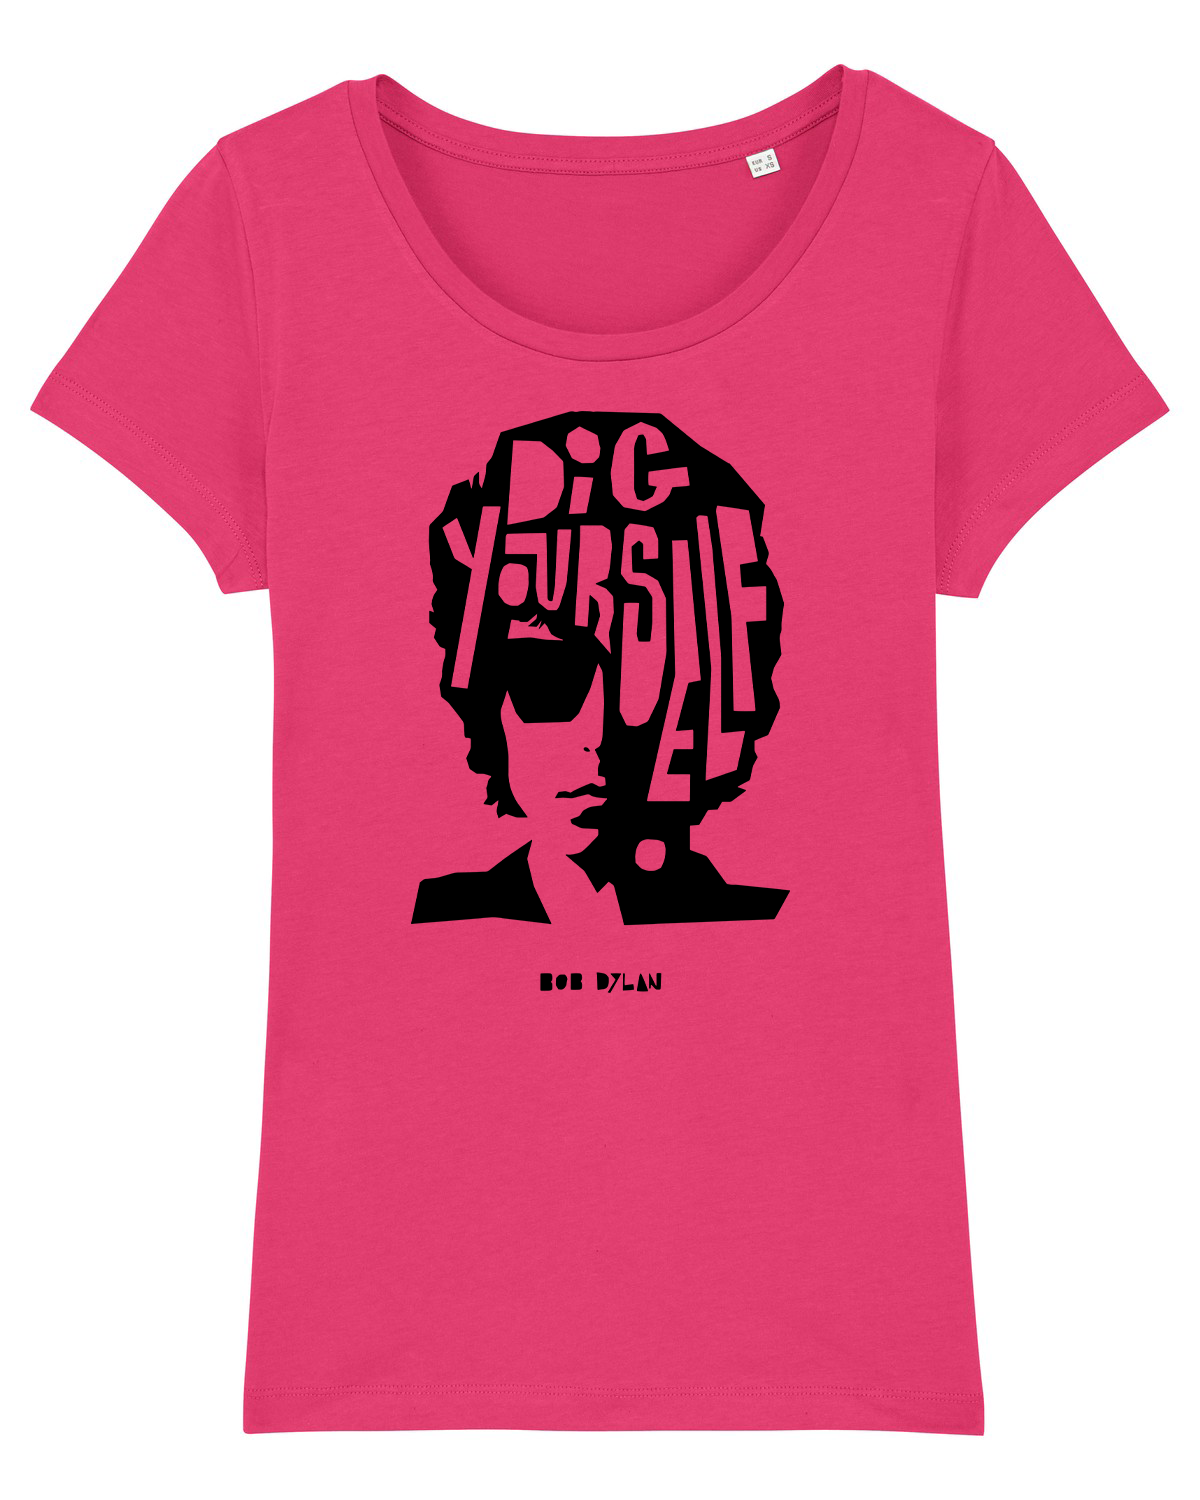 'Dig Yourself' Organic Womens T-shirt